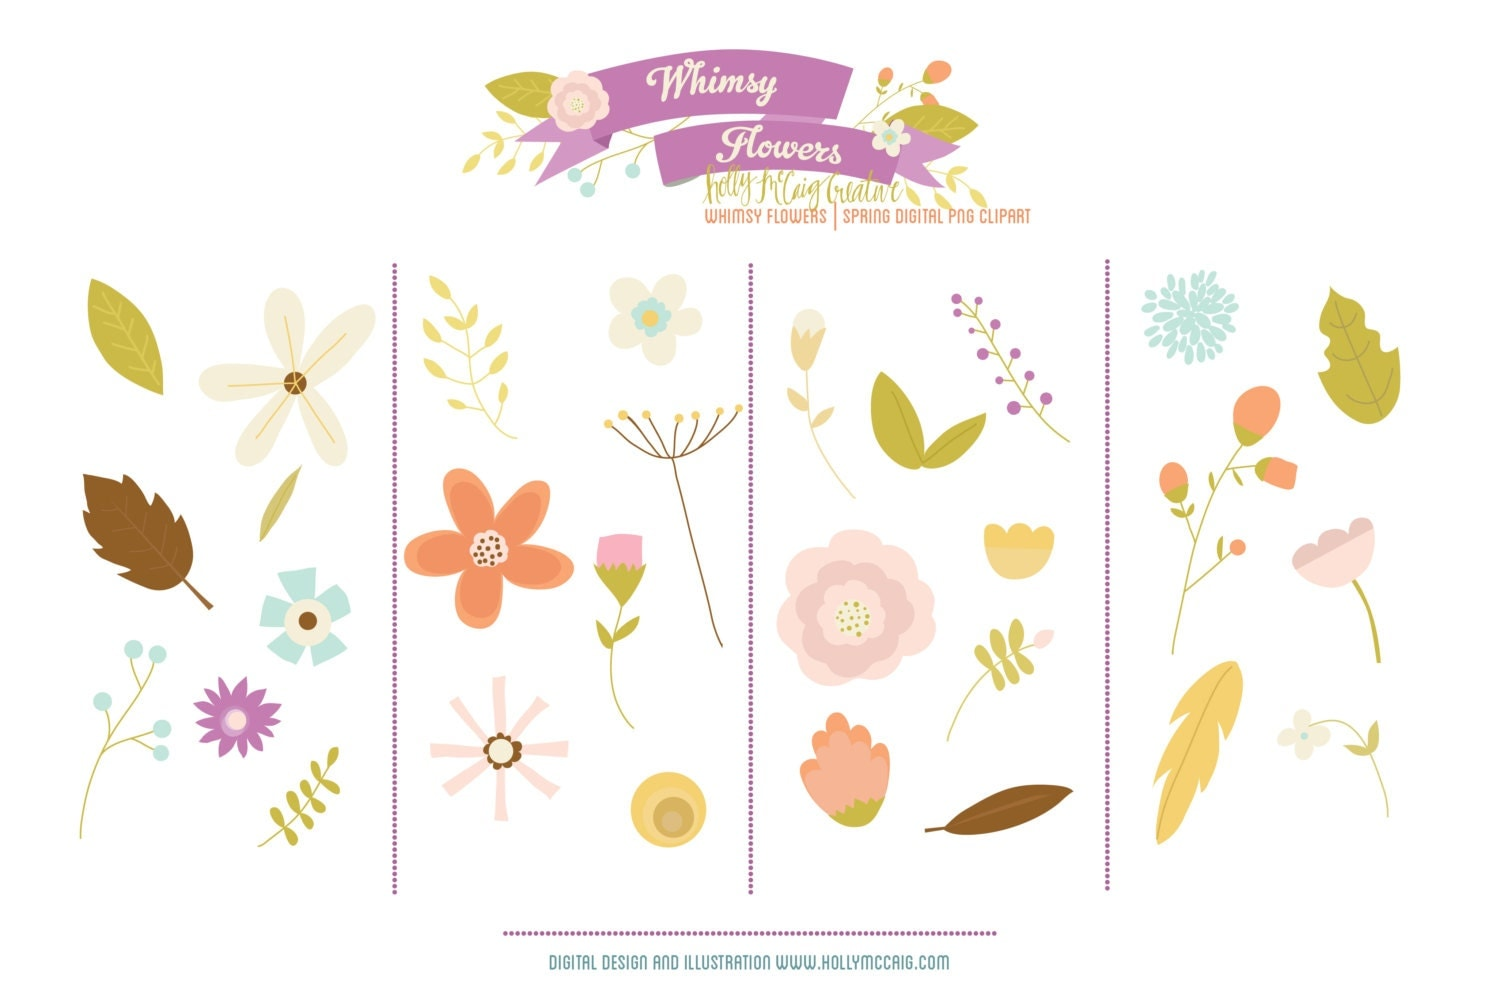 Flower crown clipart tumblr free download flower crown clipart tumblr izmirmasajfo